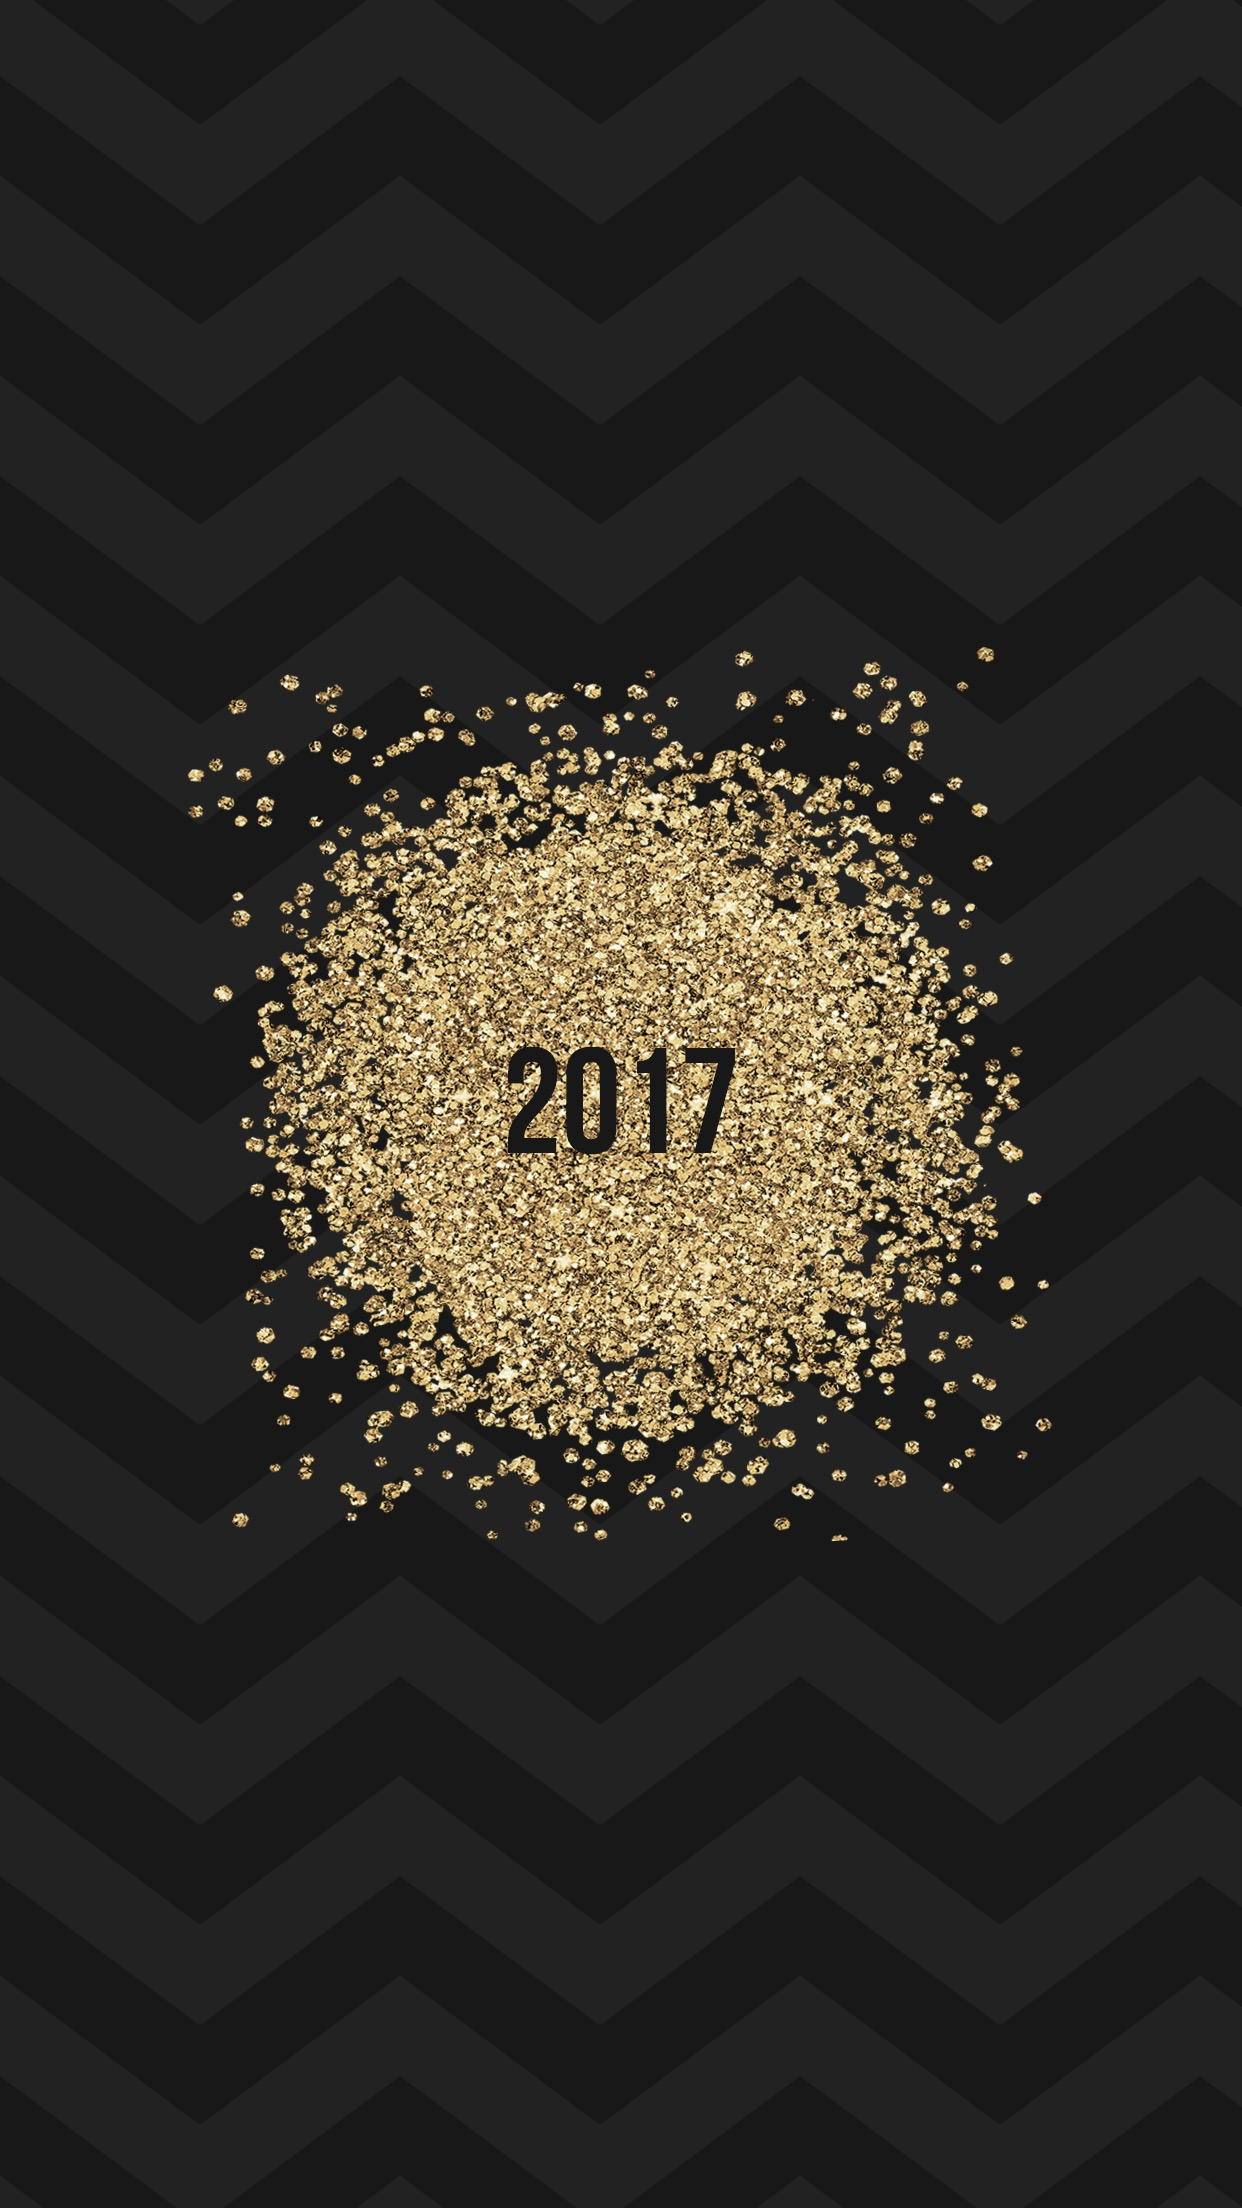 black-gold-glitter-background-iphone-android-HD-wallpaper-wp4604288